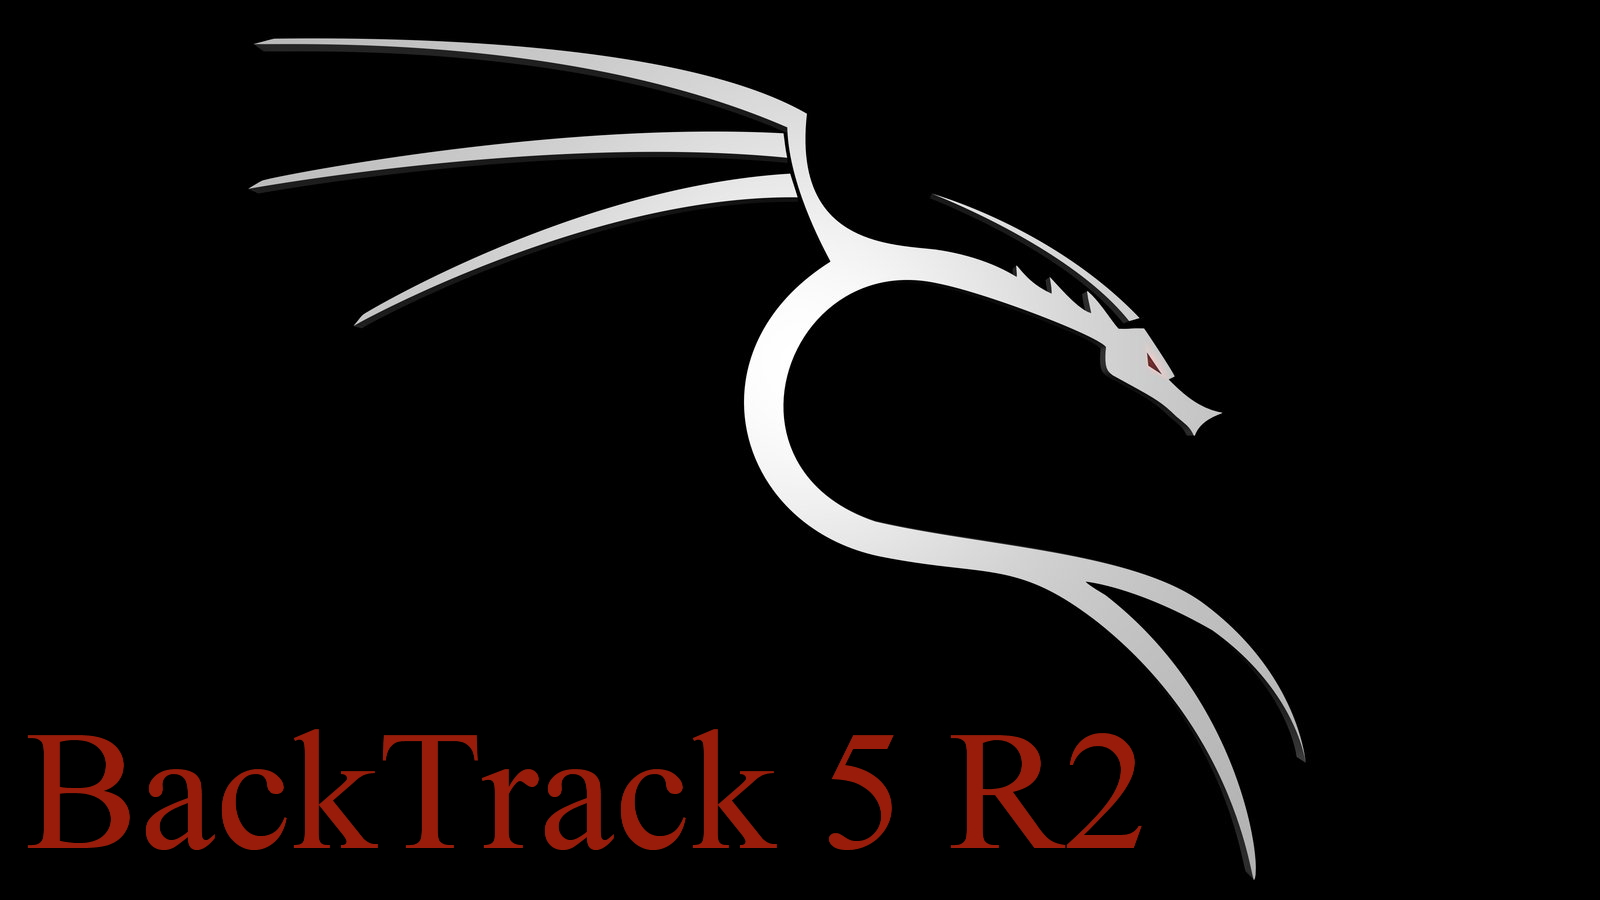 Download BackTrack 5 R2 | Learn Cyber Security